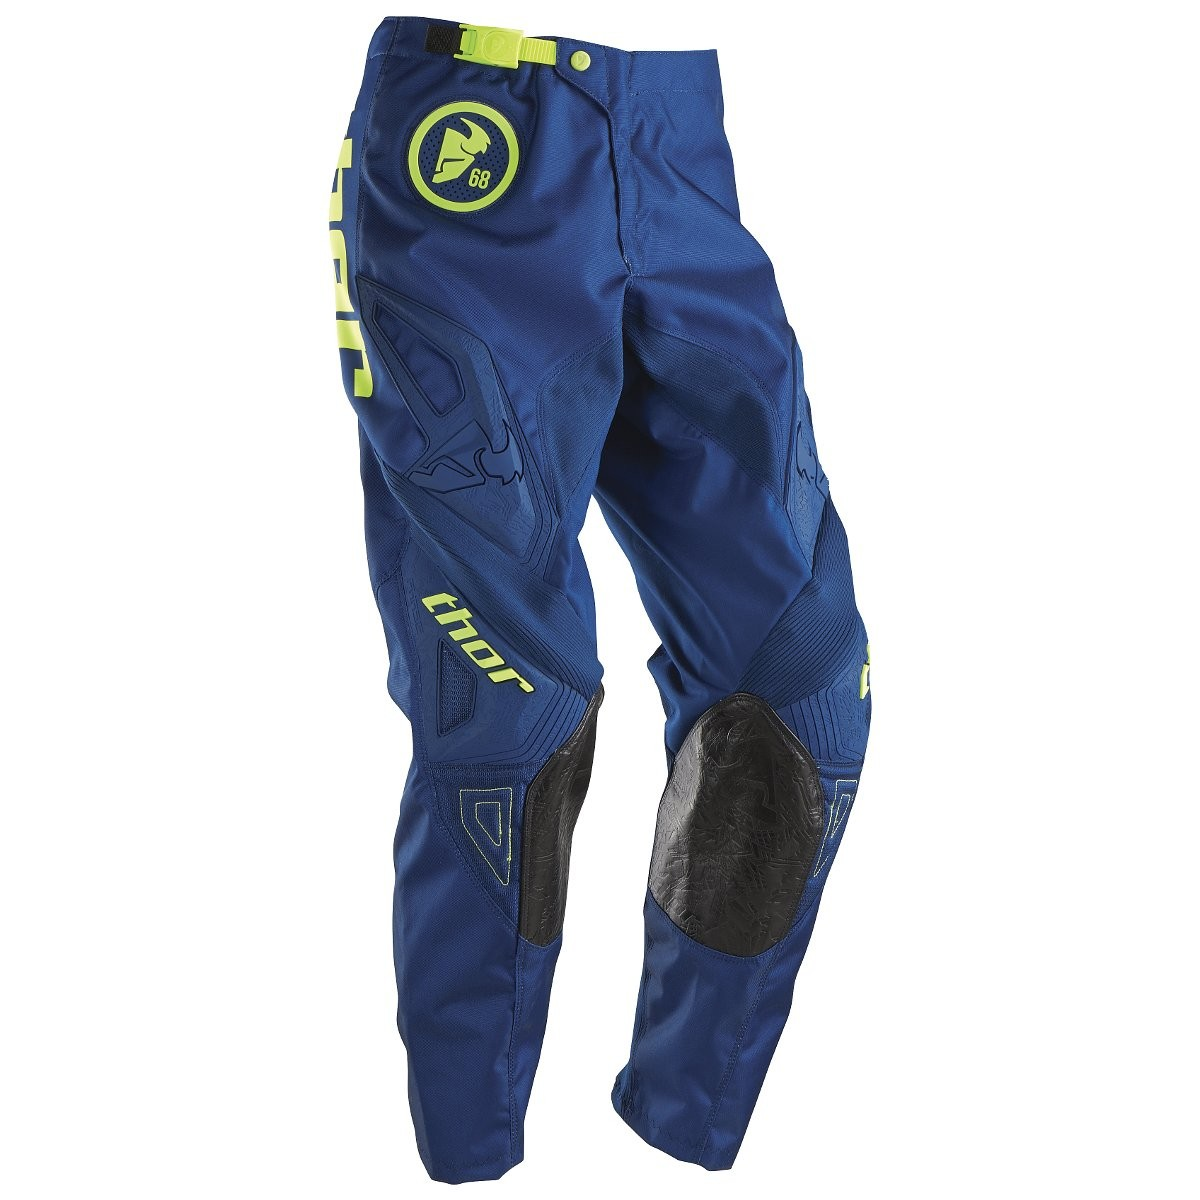 Navy/Lime